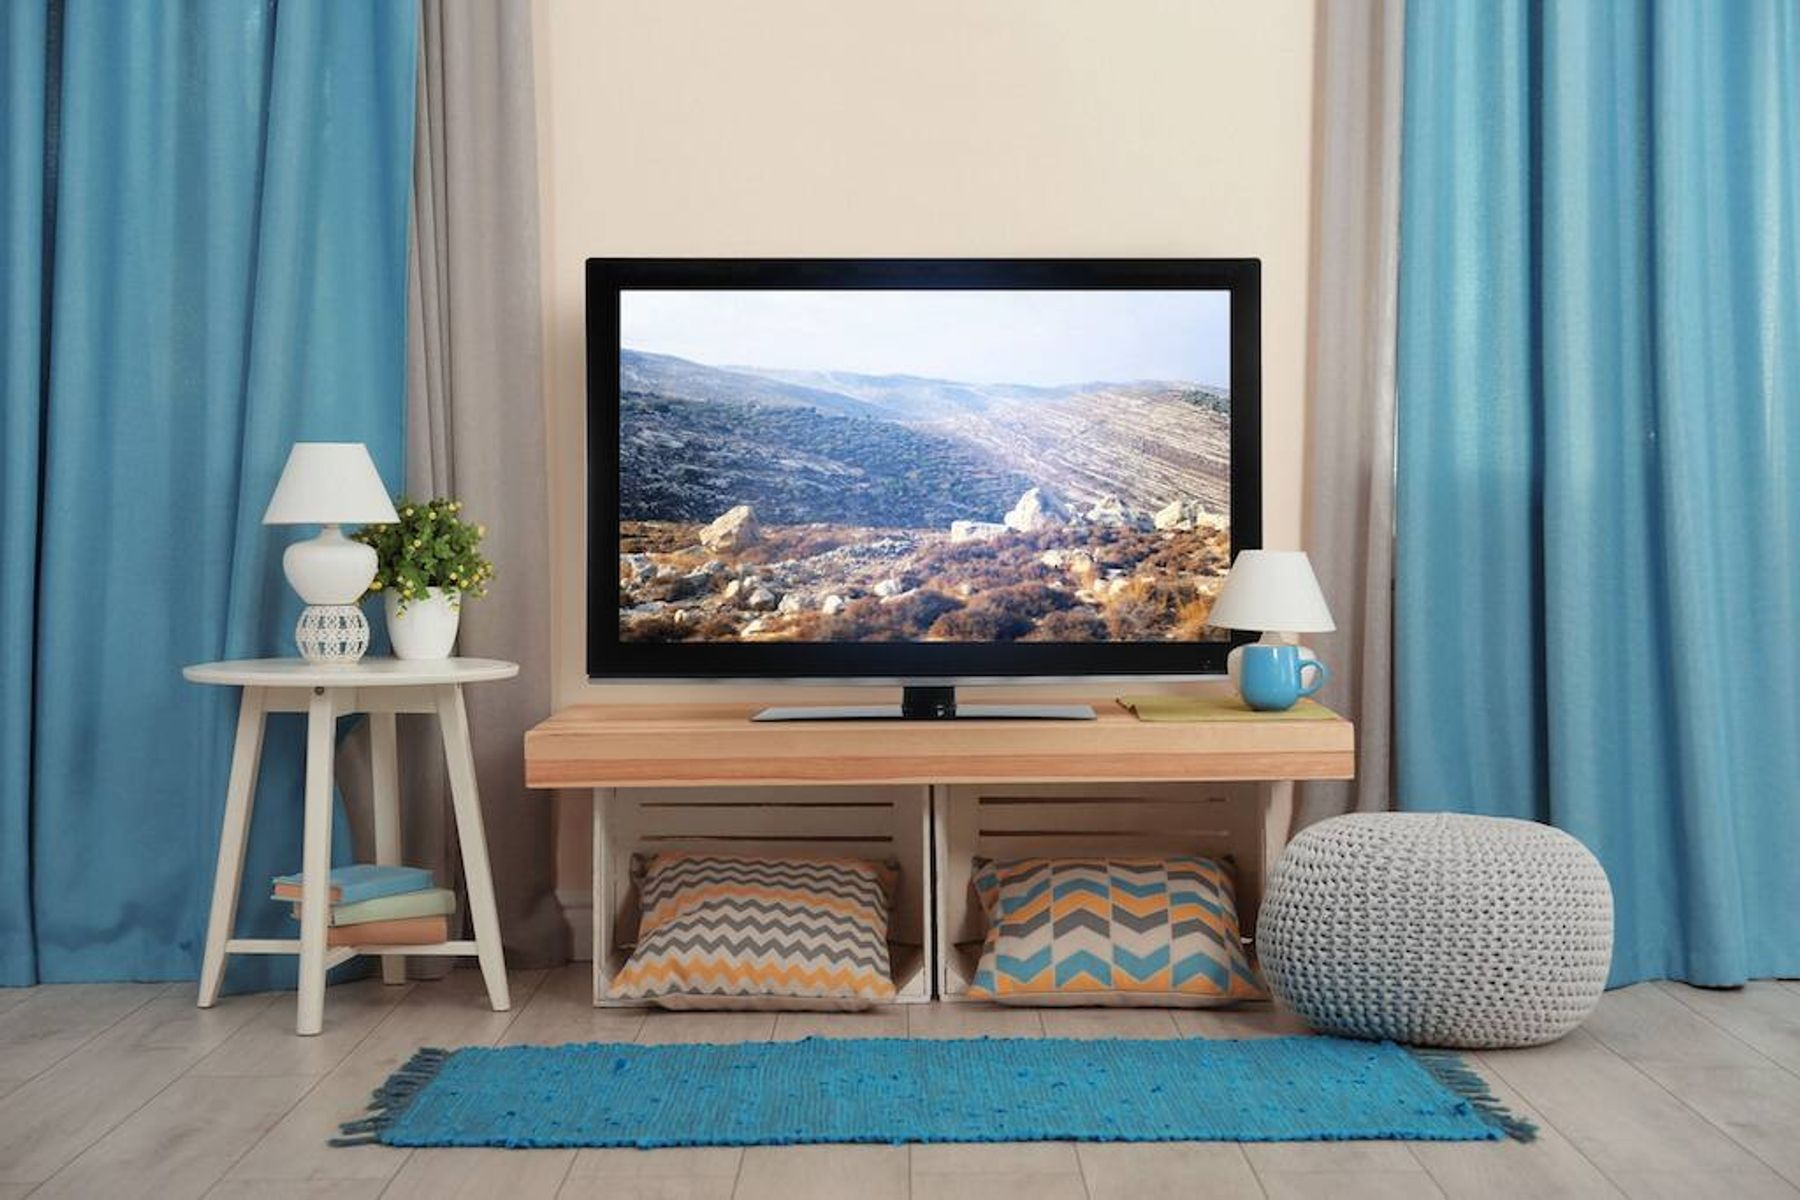 a living room with blue curtains and a TV on a wooden table